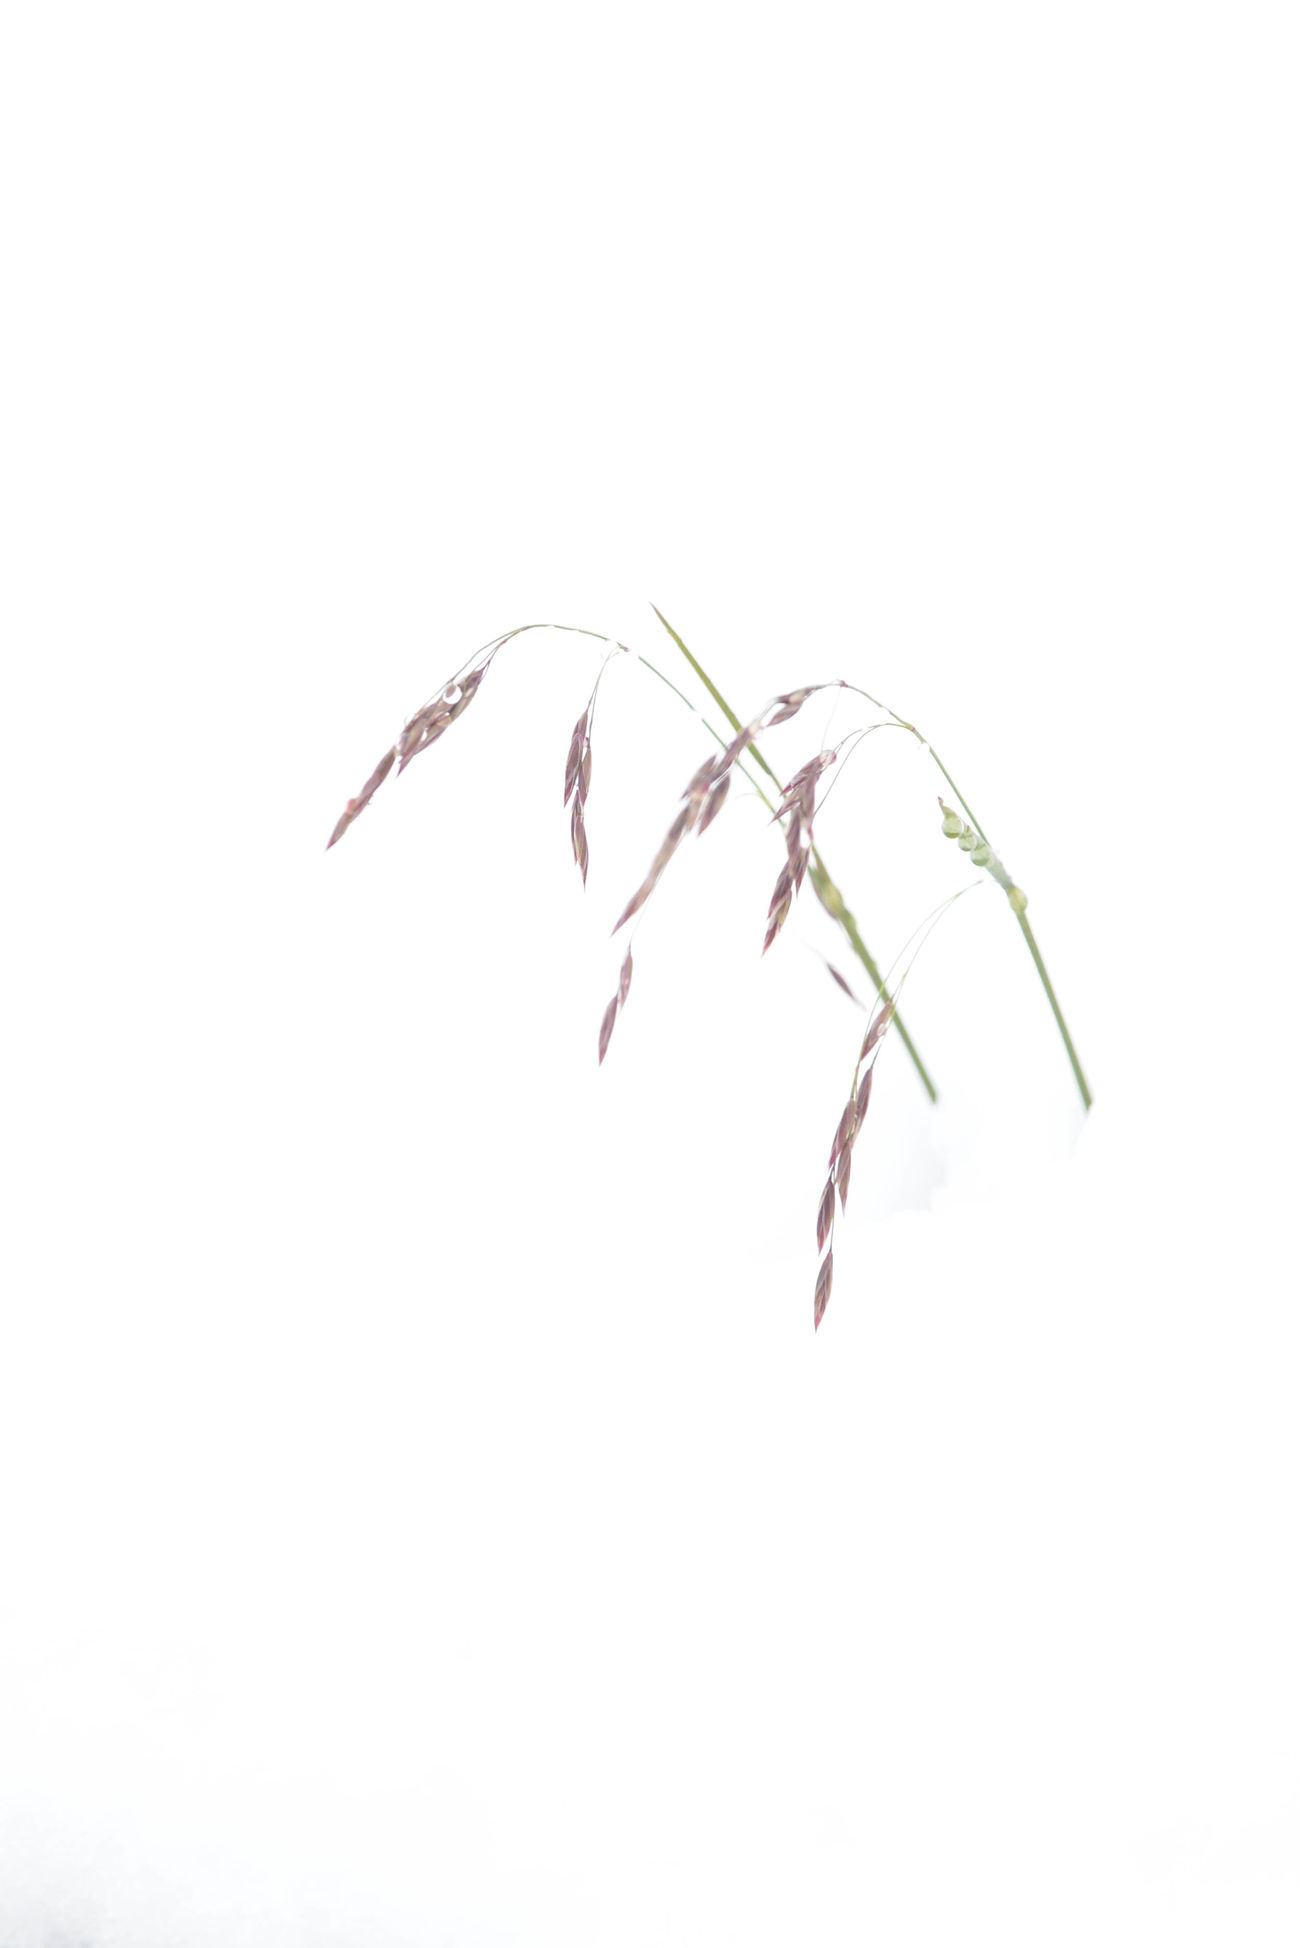 Abstract Alaska Art Close-up Day Grass In Snow Growth Nature Nature No People Plant Silhouette Snow Snow In Summer White White Background Wild